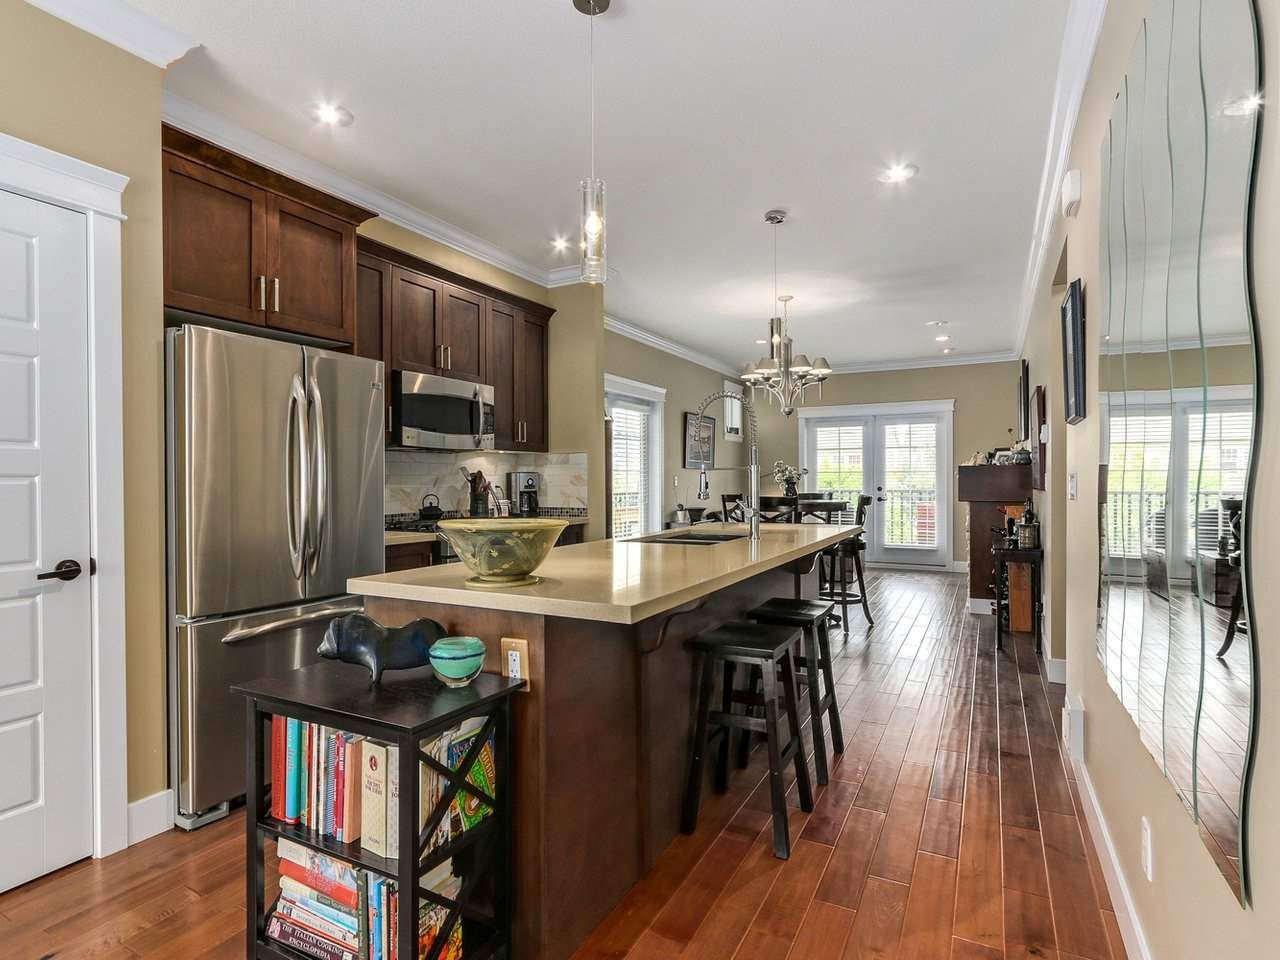 """Photo 6: Photos: 31 17171 2B Avenue in Surrey: Pacific Douglas Townhouse for sale in """"AUGUSTA TOWNHOUSES"""" (South Surrey White Rock)  : MLS®# R2280398"""